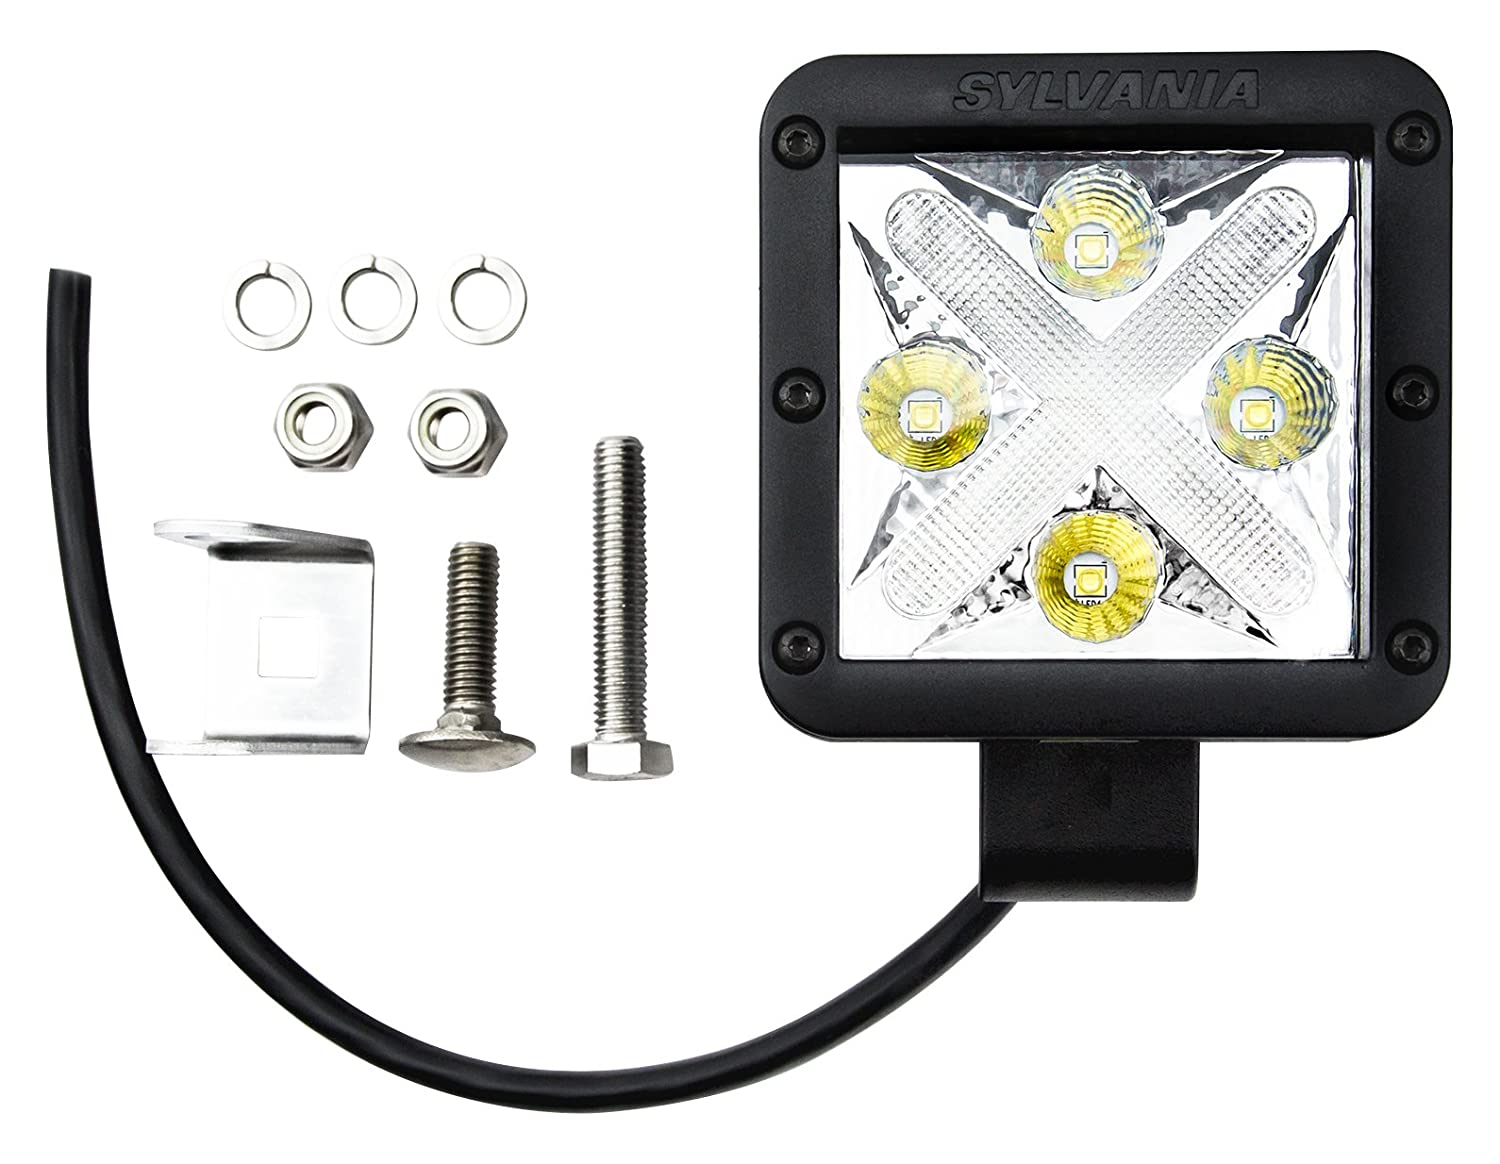 Amazon.com SYLVANIA LED CUBE-X Off-Road Spot Light (Contains 1 Light) Automotive  sc 1 st  Amazon.com & Amazon.com: SYLVANIA LED CUBE-X Off-Road Spot Light (Contains 1 ... azcodes.com